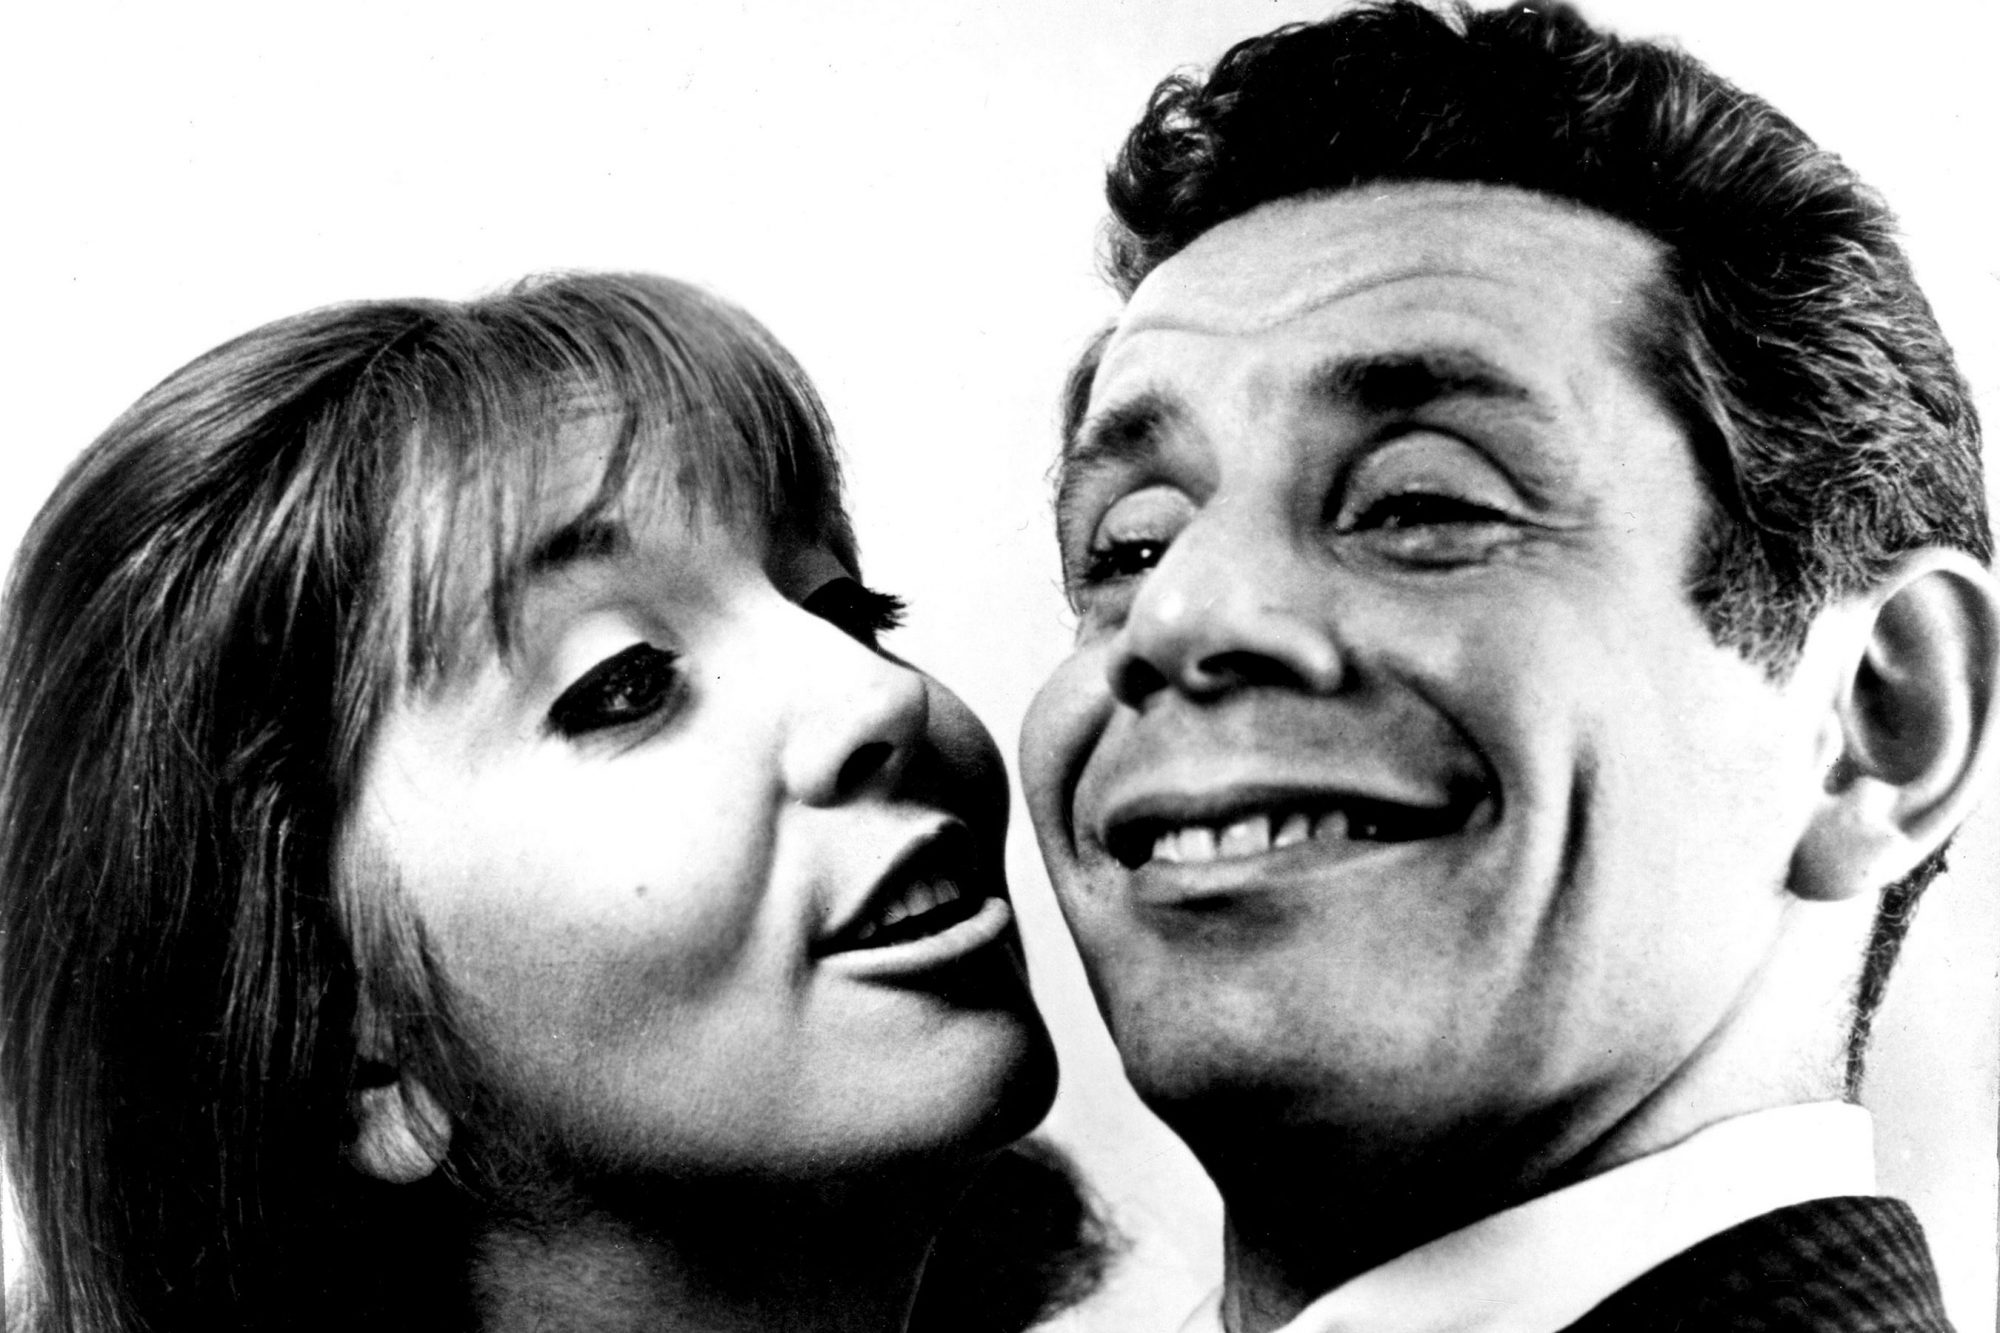 From left, Anne Meara, Jerry Stiller, ca. 1970